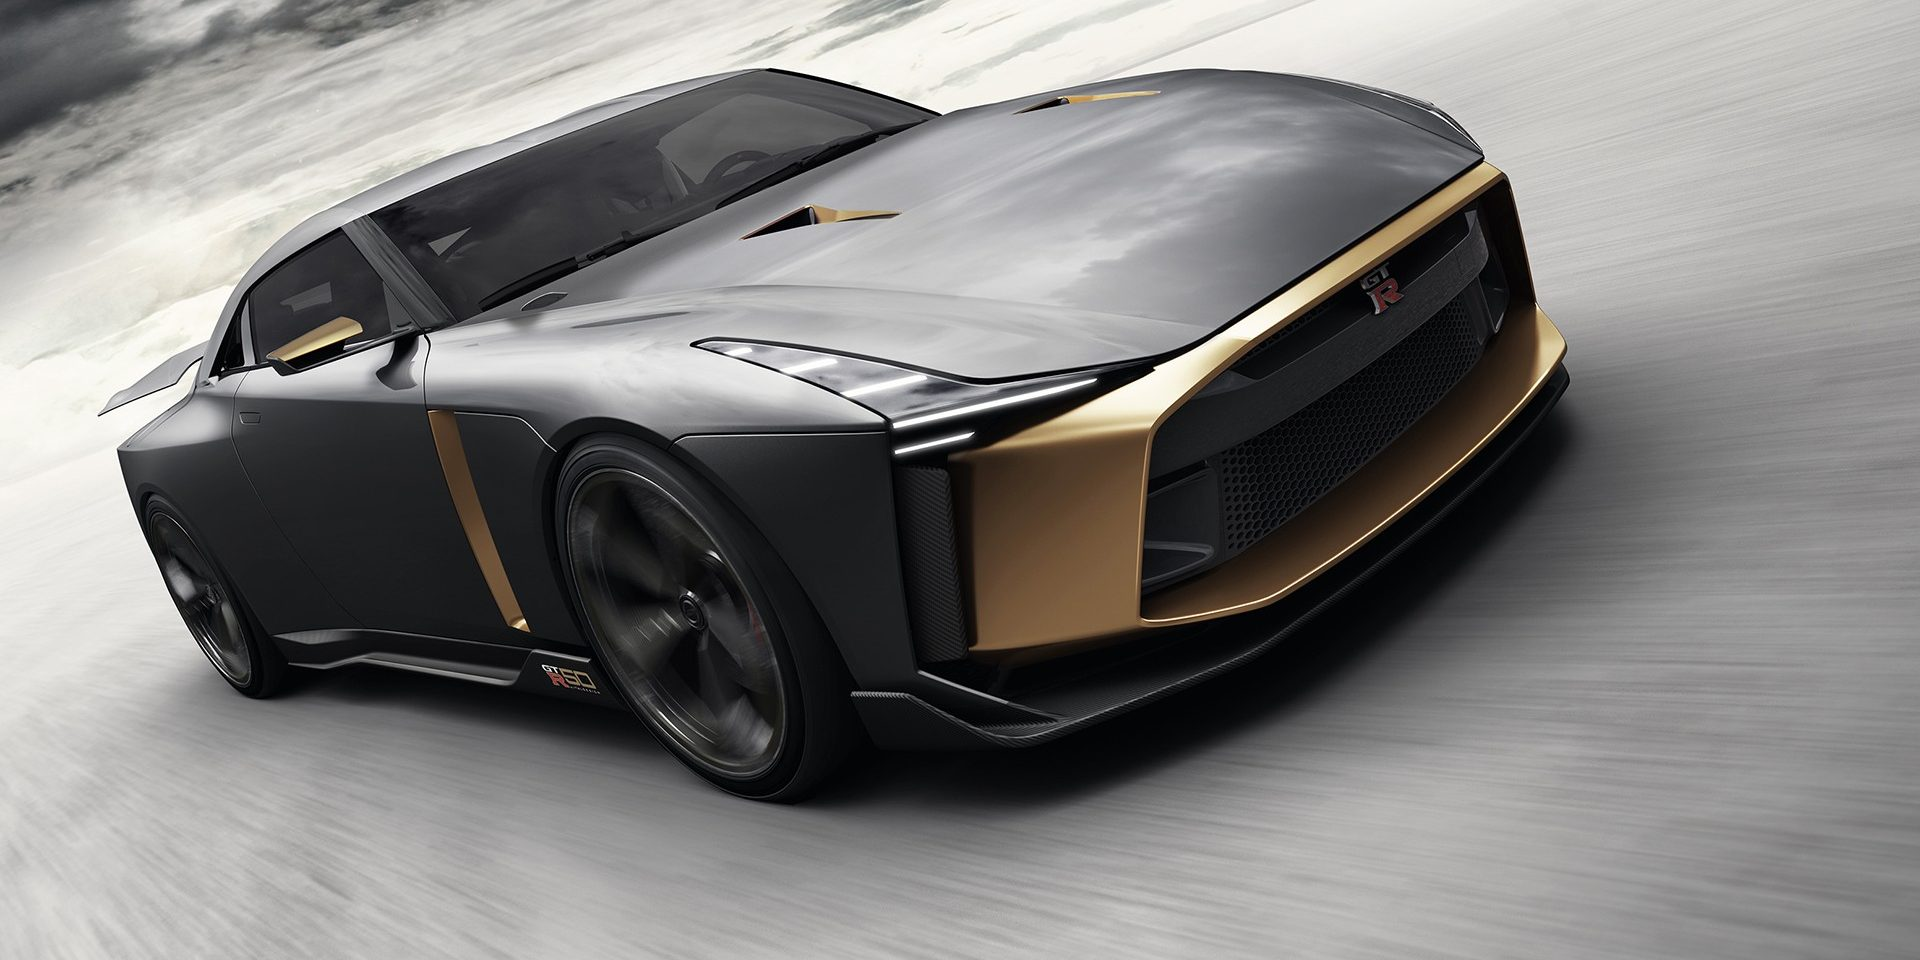 la nissan gt r et italdesign f tent leurs 50 ans 720 ch au programme photo 1 l 39 argus. Black Bedroom Furniture Sets. Home Design Ideas